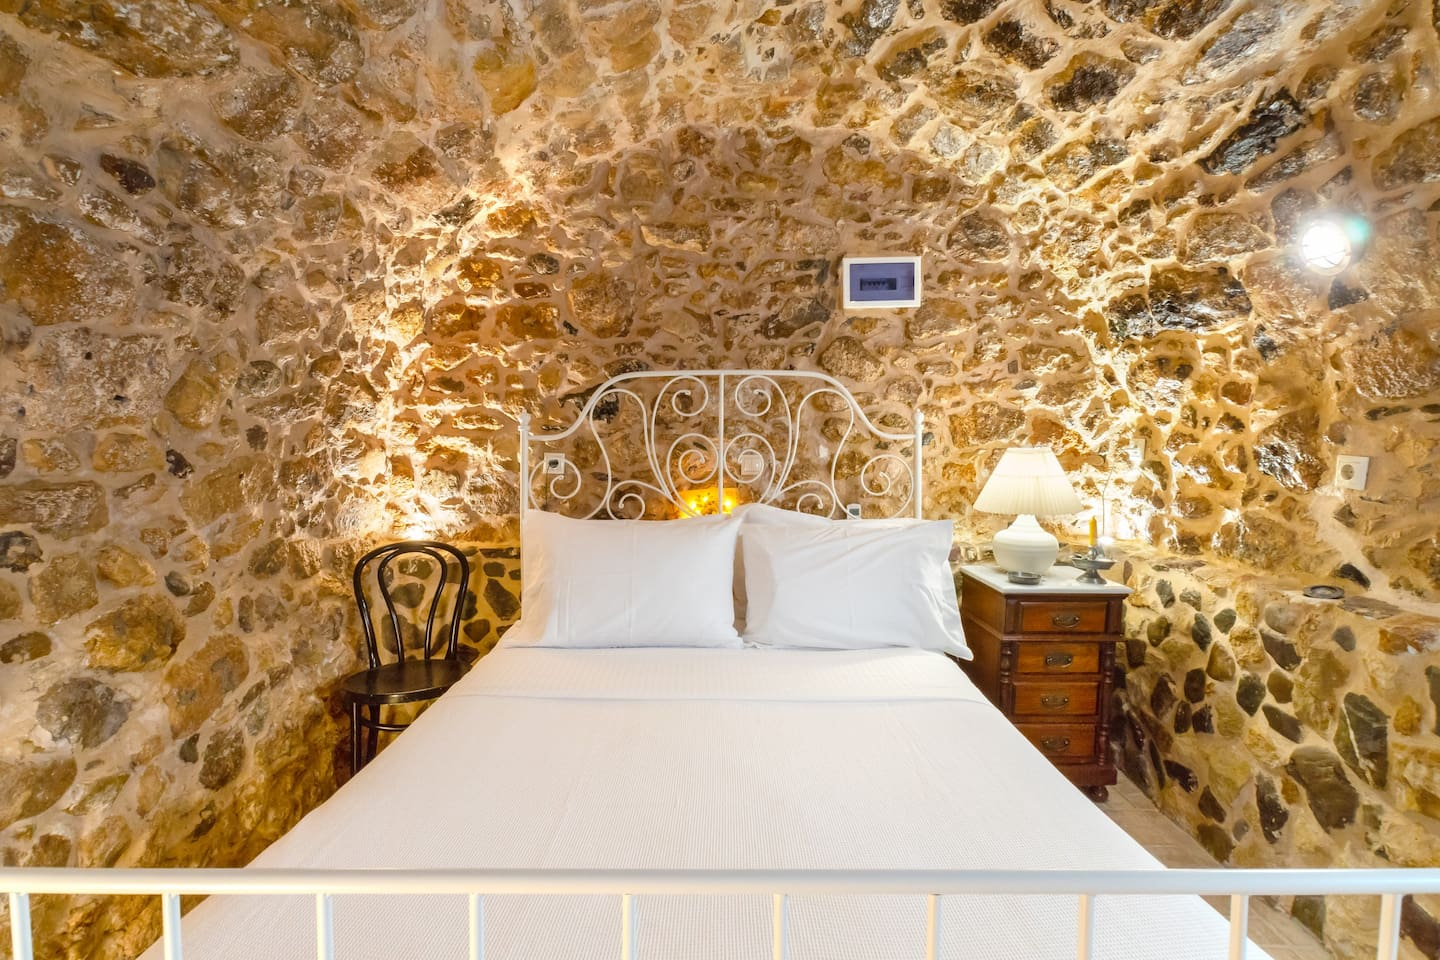 stone bedroom with wc and small kitchenette